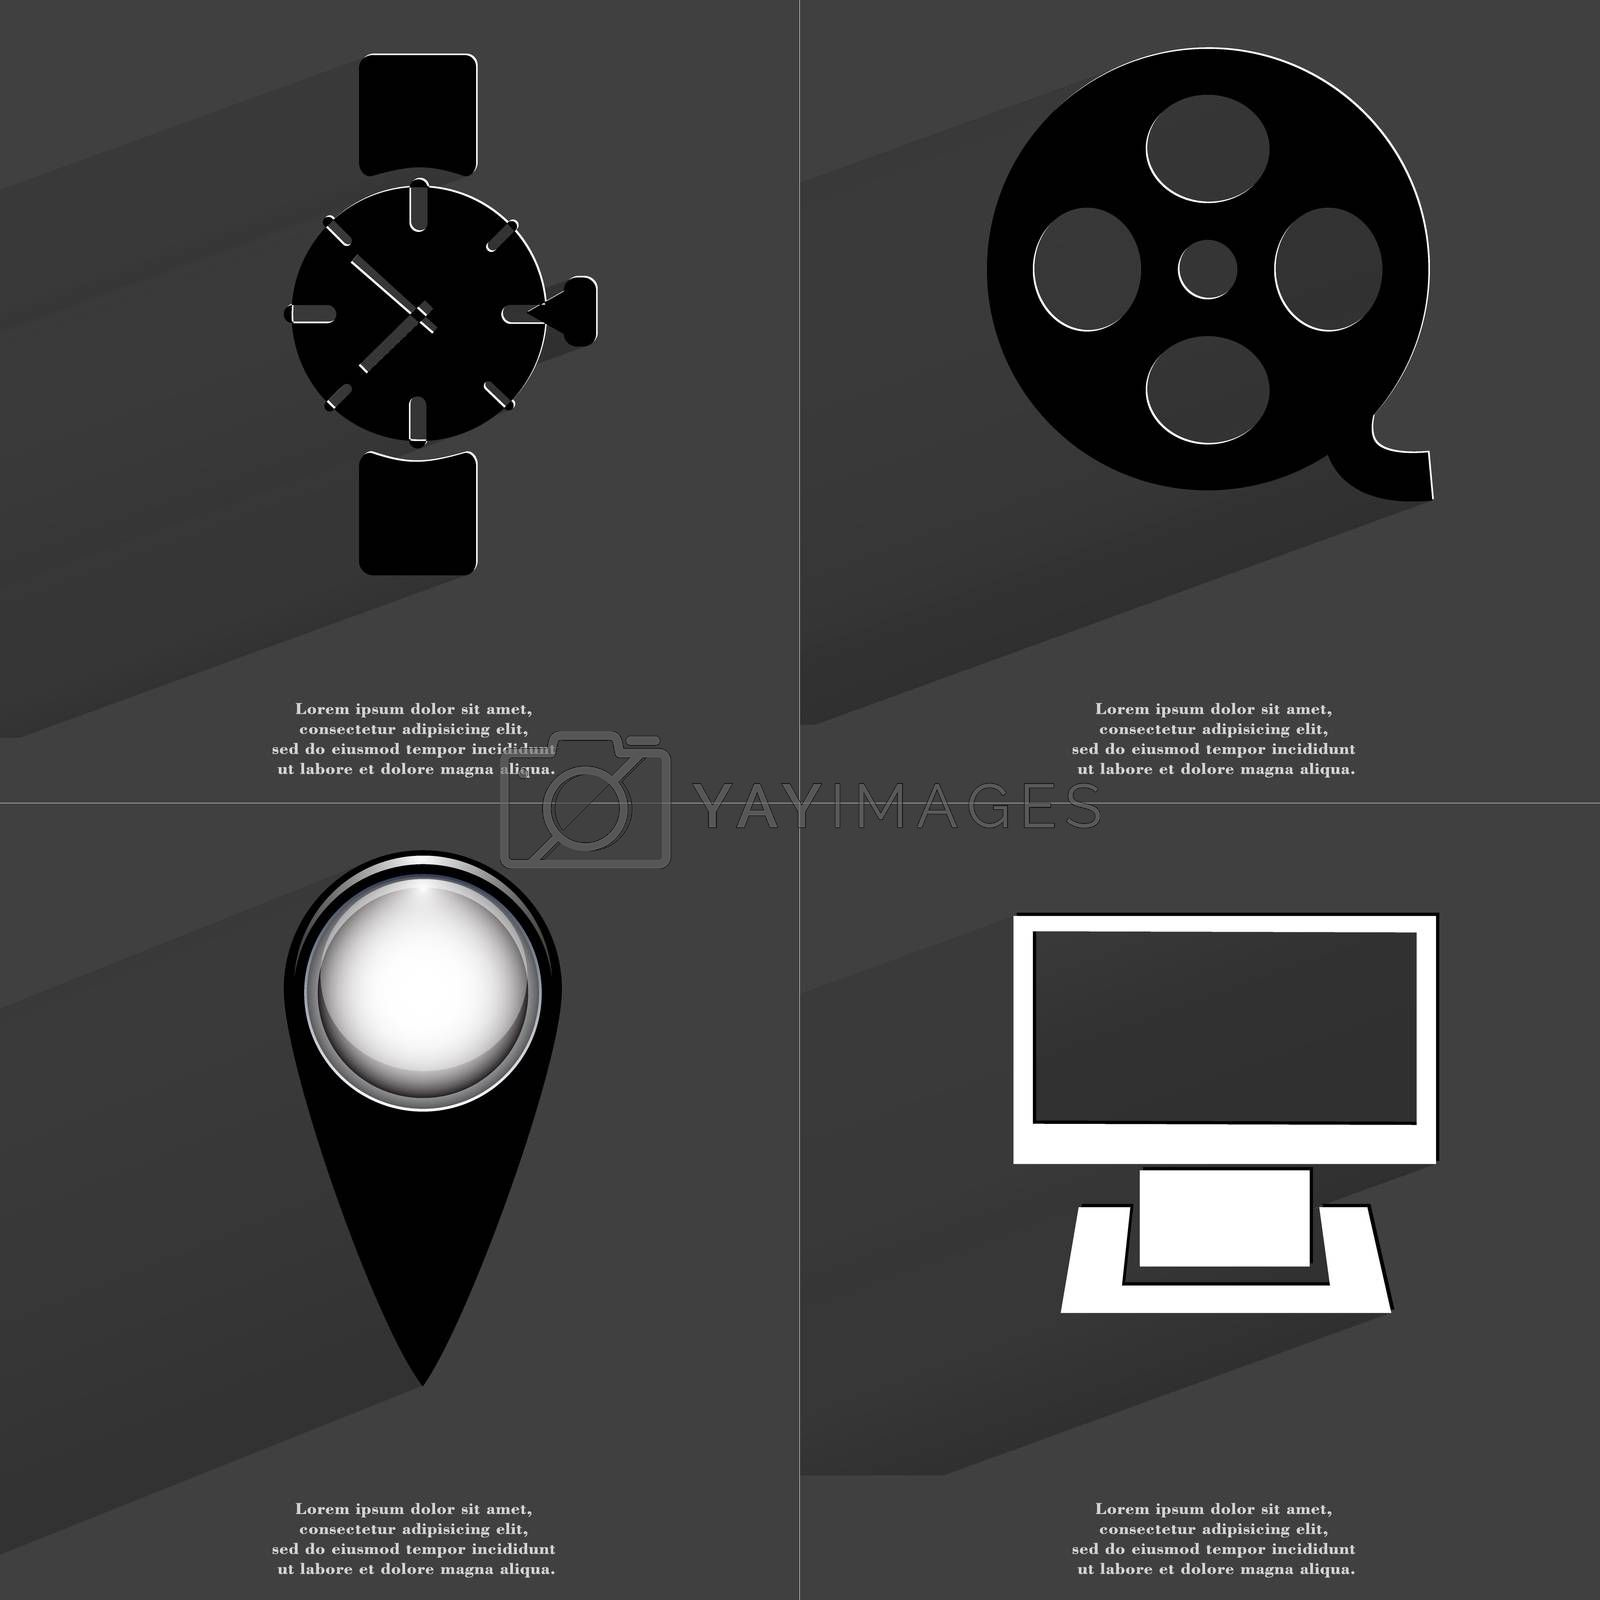 Wrist watch, Videotape, Checkpoint, Monitor. Symbols with long shadow. Flat design by serhii_lohvyniuk